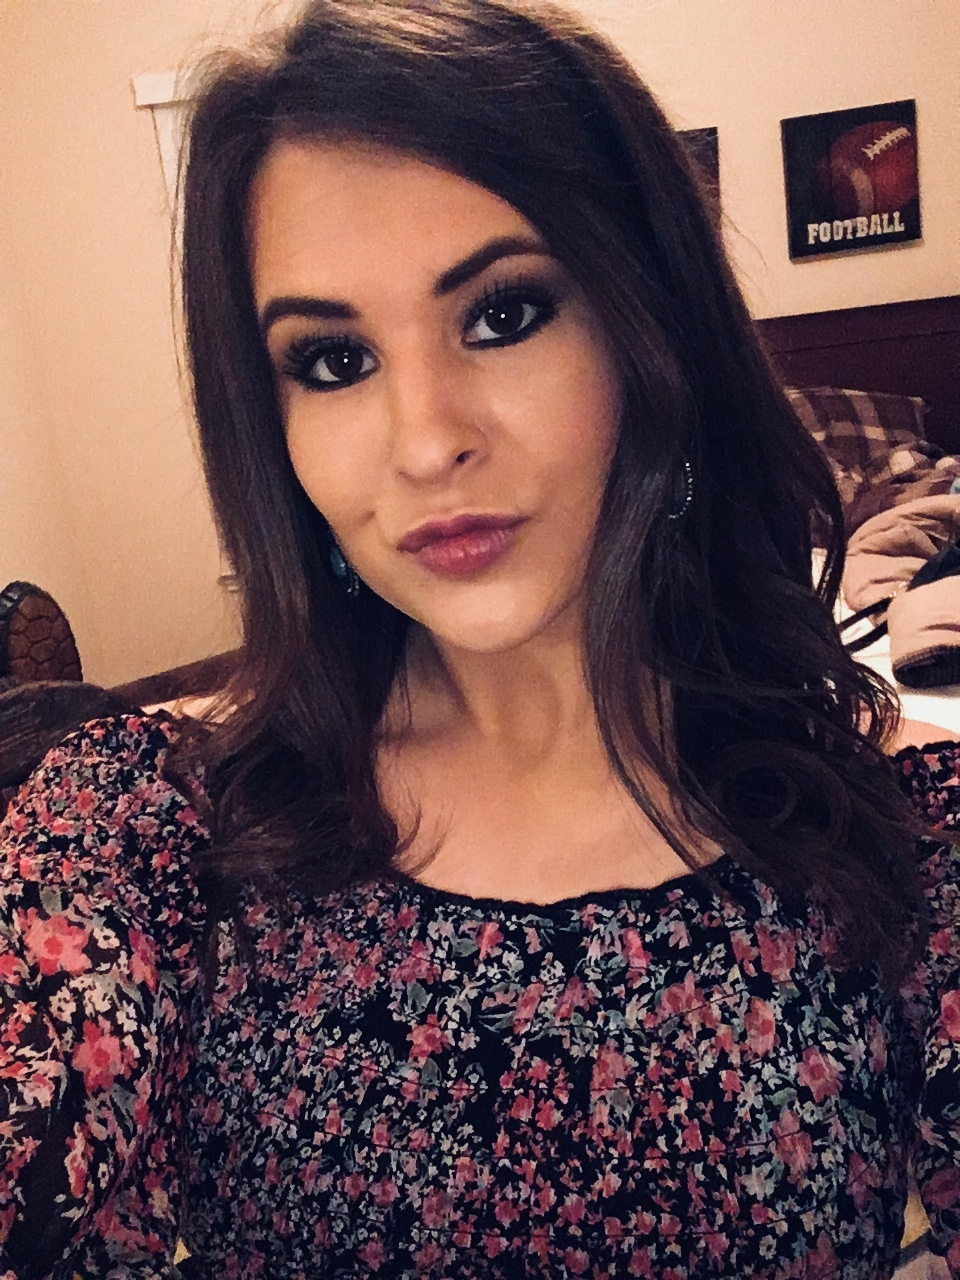 22-year-old, Single From: League City, TX, United States